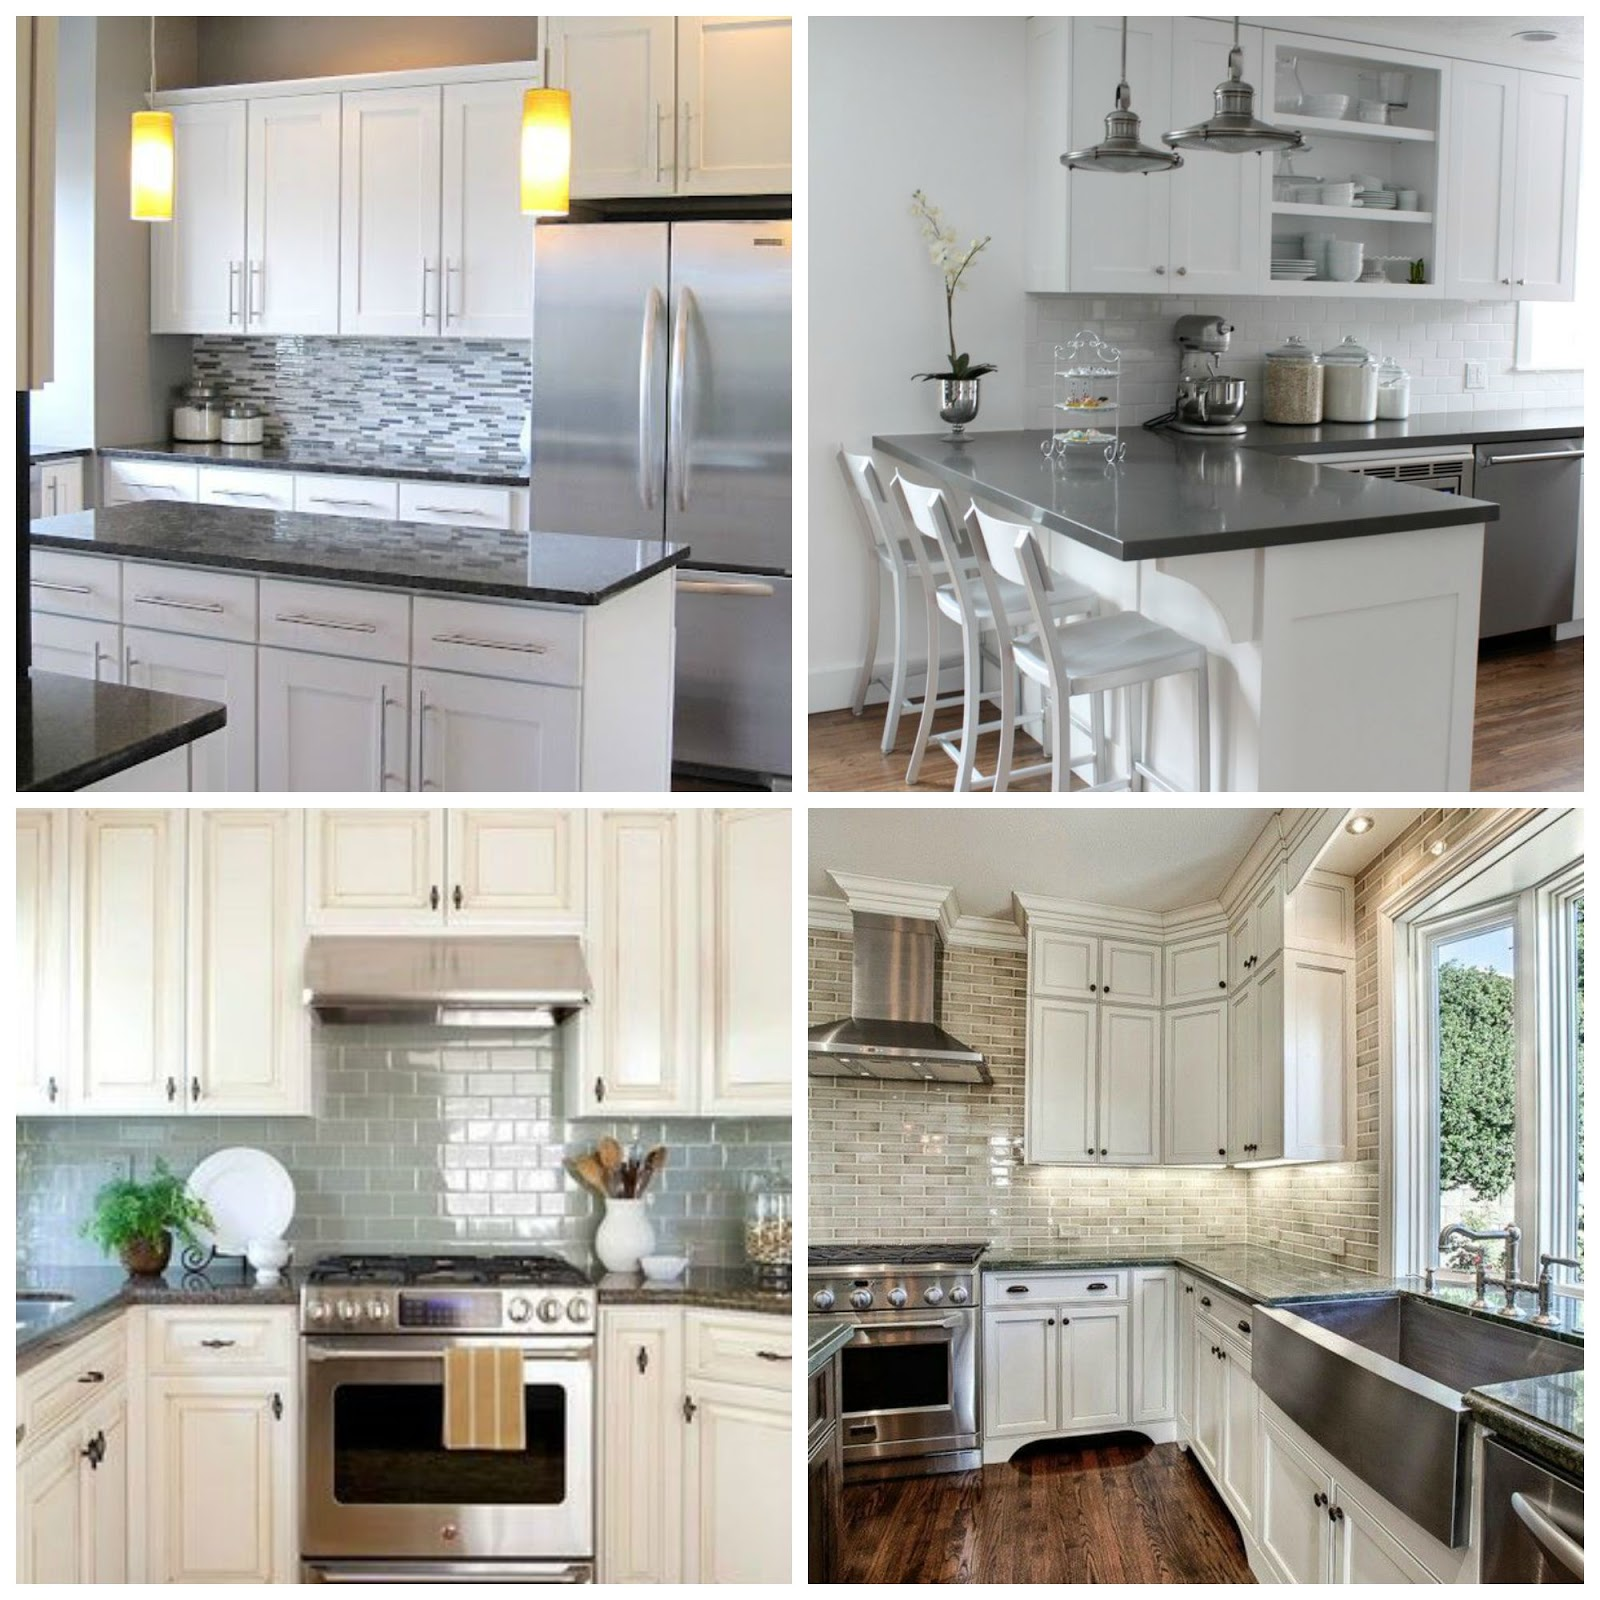 Dark And Light Kitchen Cabinets Together: Light Granite Countertops White Cabinets Others Beautiful